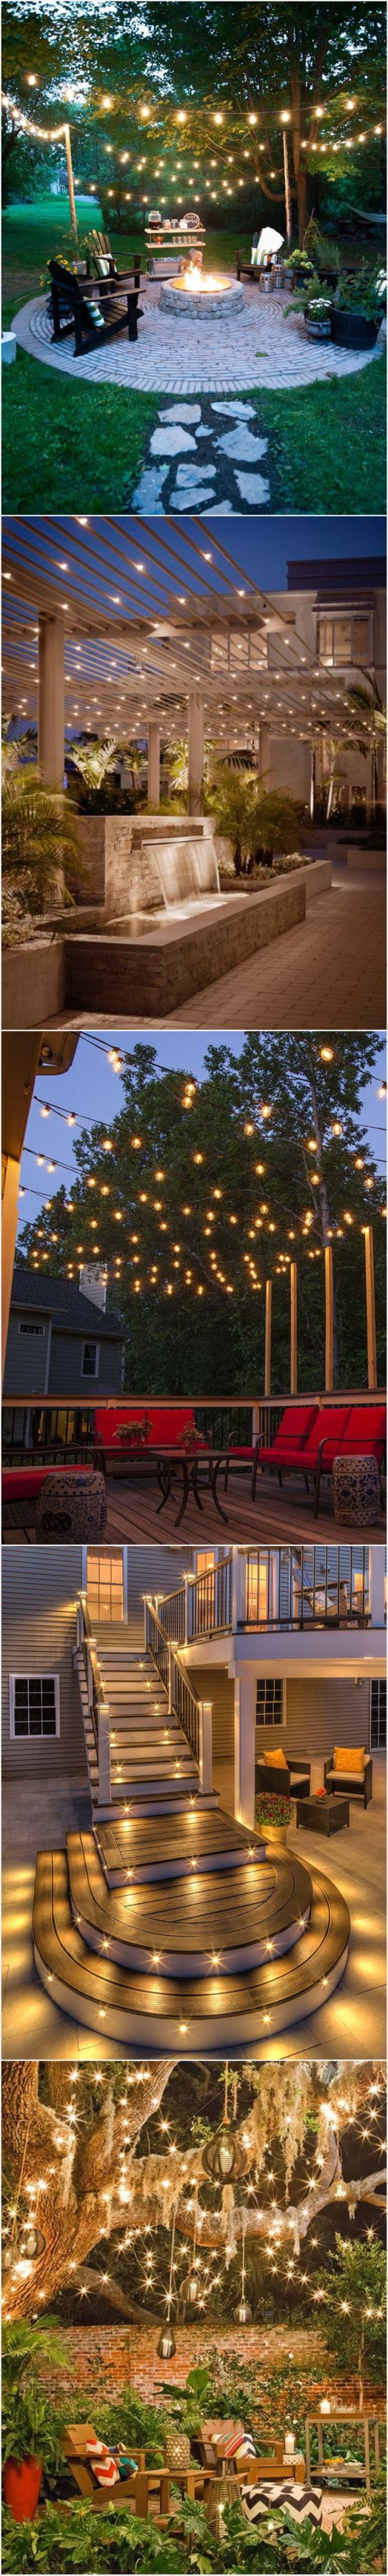 5 Photos For Amazing Outdoor Living